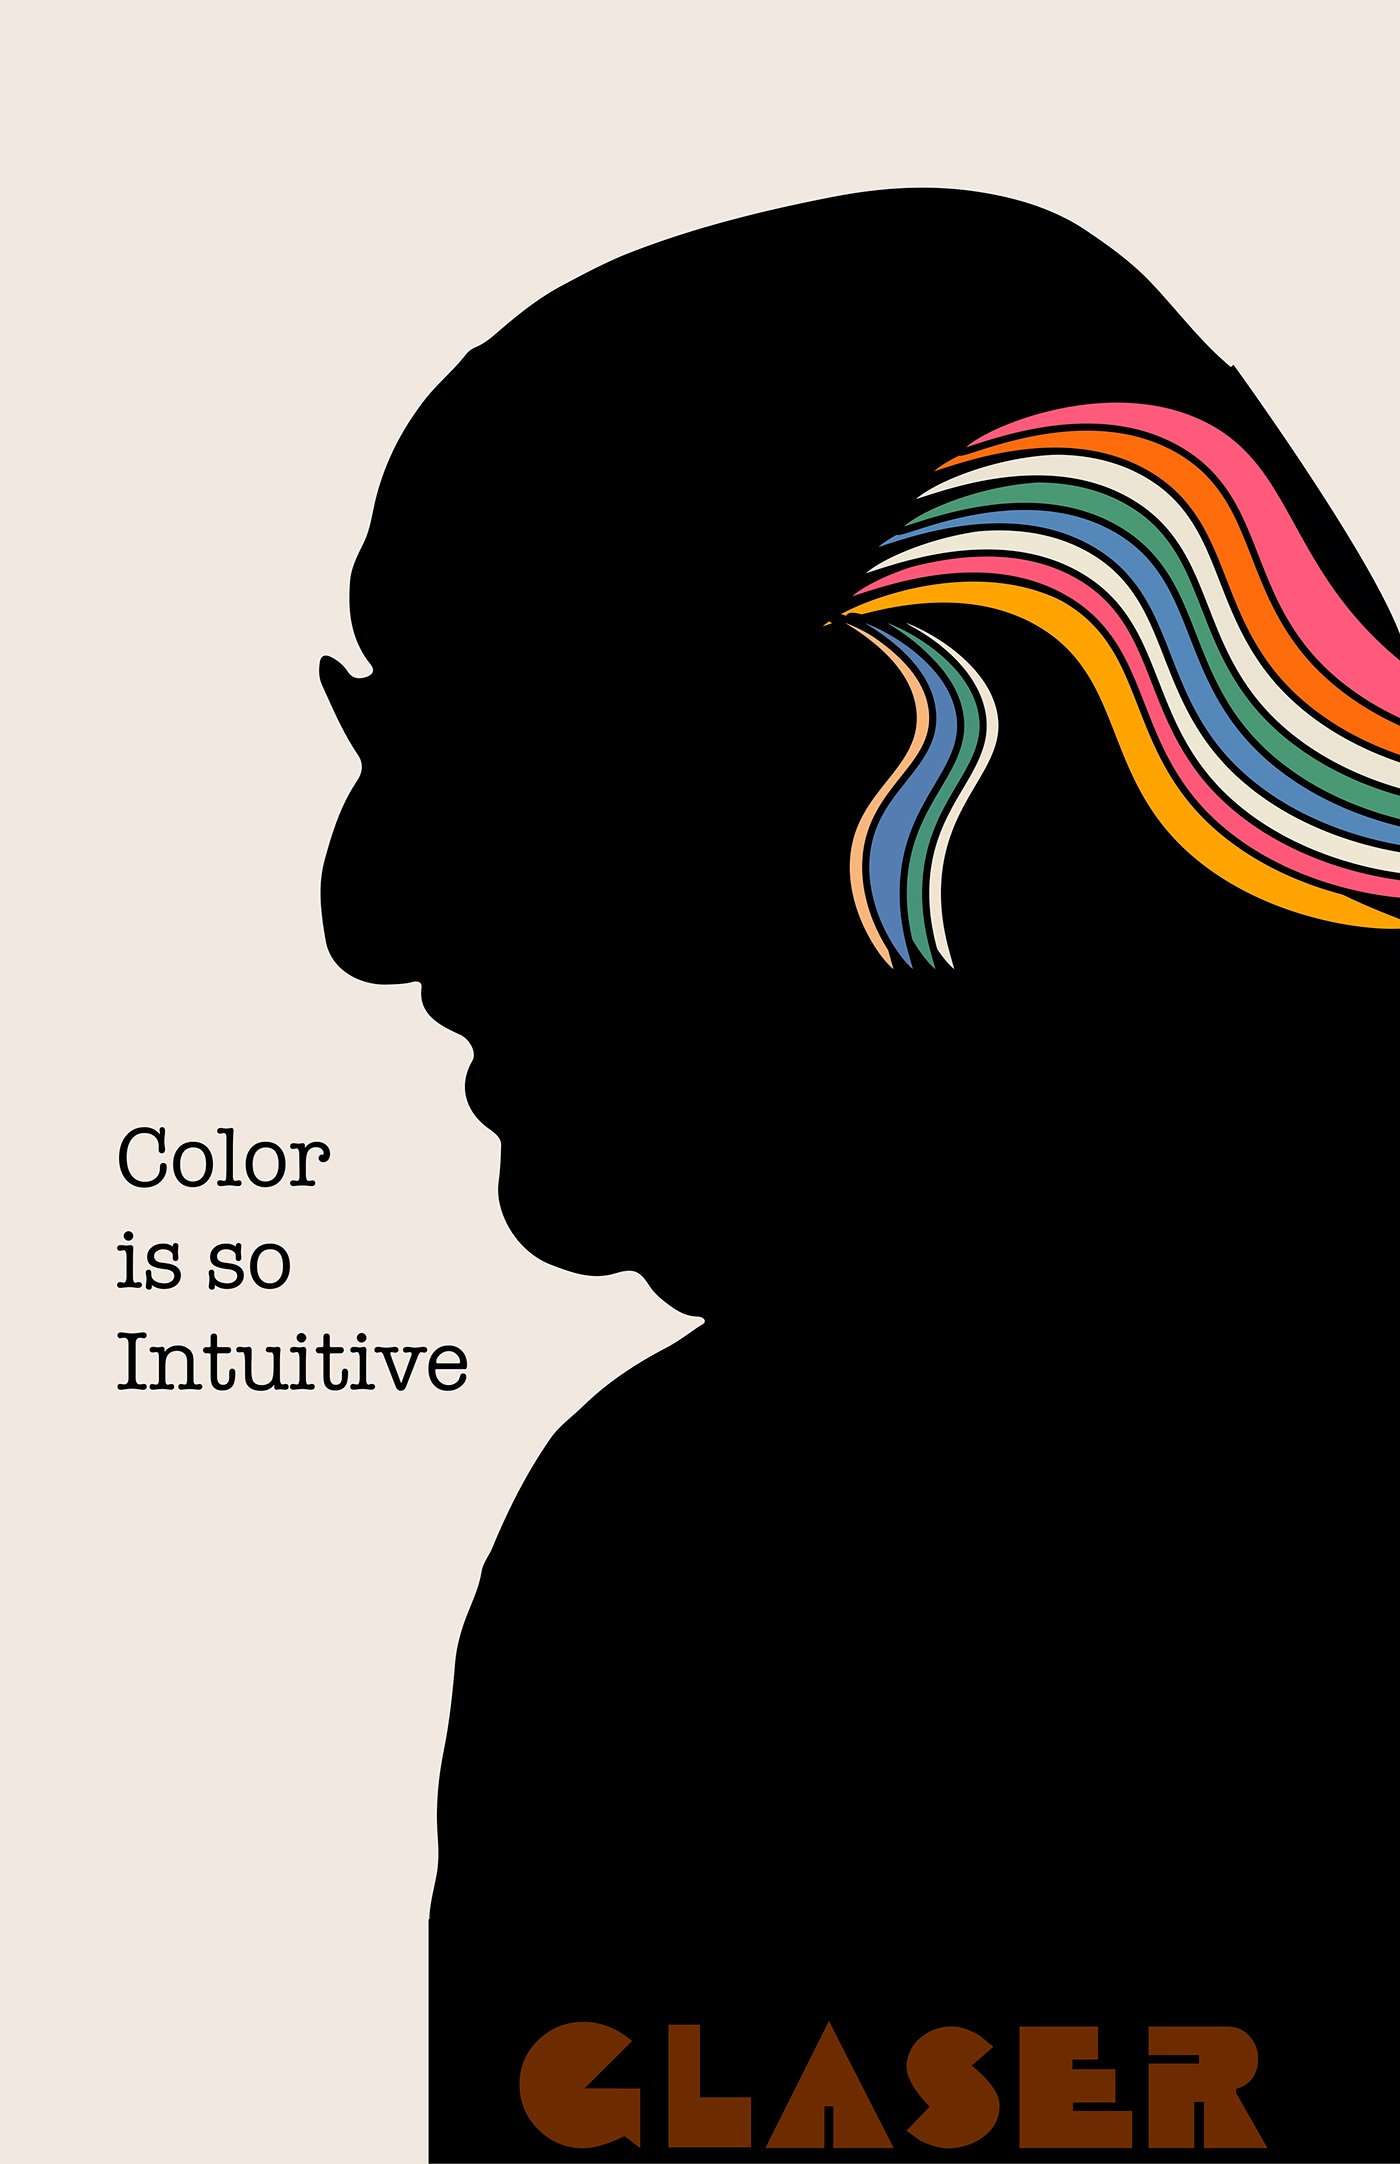 milton glaser Check out famous graphic designer milton glaser's biography, posters, quotes and artwork in a short review on the graphic design blog.